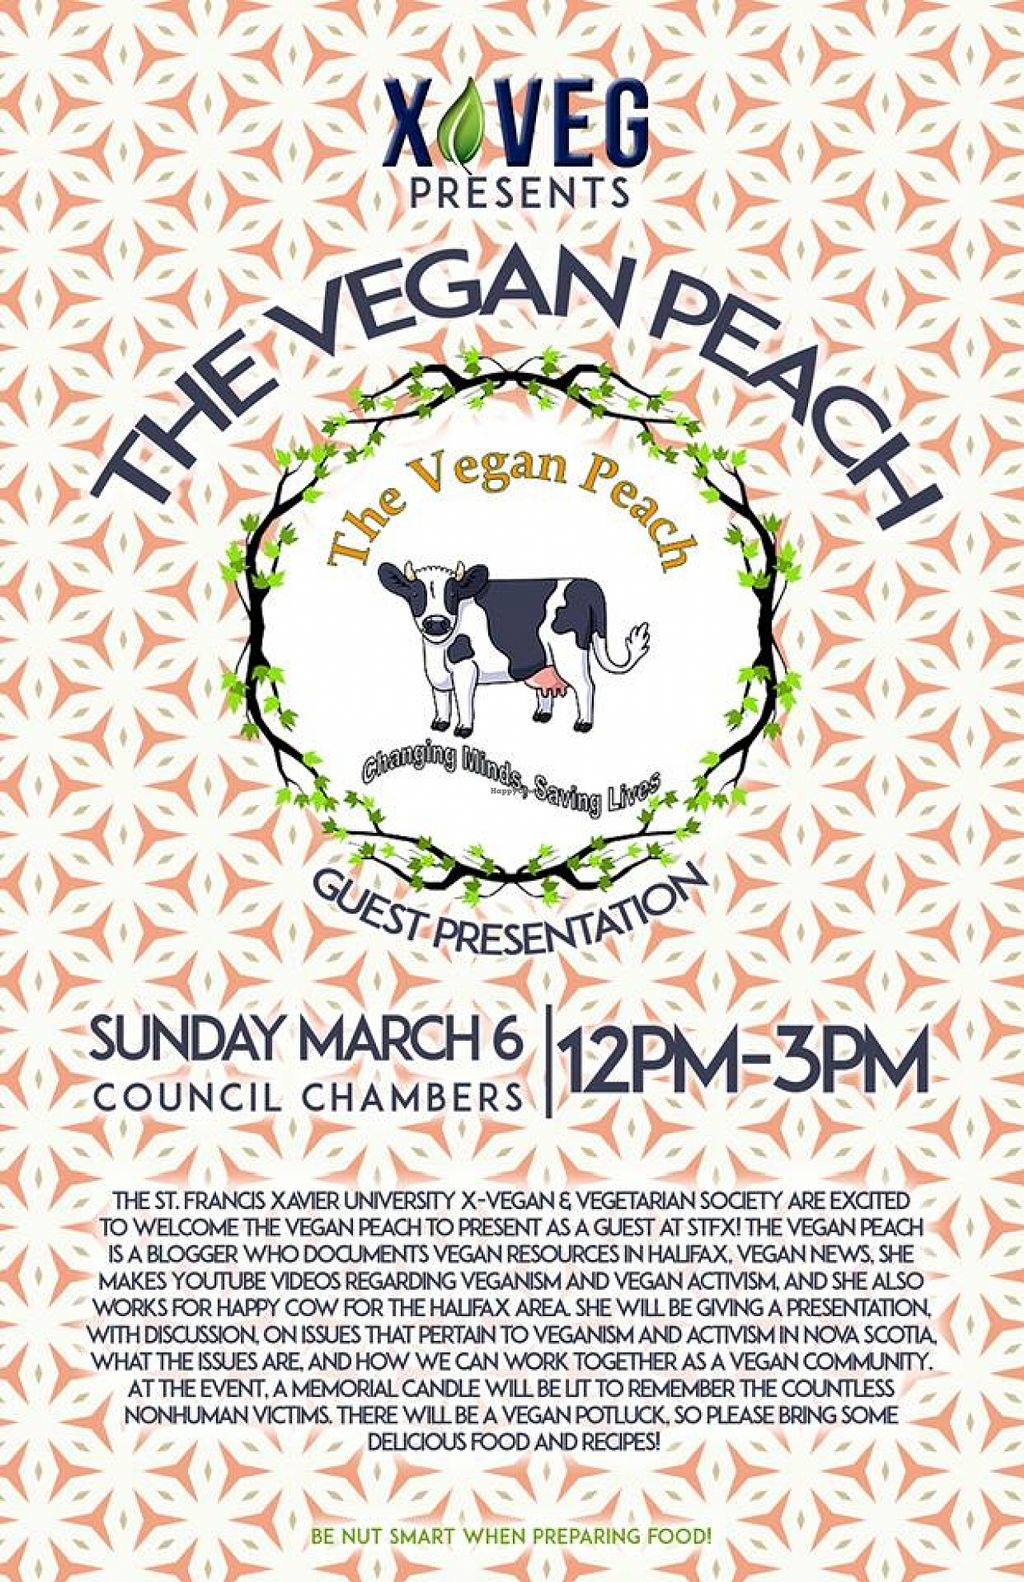 """Photo of The Vegan Peach  by <a href=""""/members/profile/QuothTheRaven"""">QuothTheRaven</a> <br/>stfx <br/> April 13, 2016  - <a href='/contact/abuse/image/72255/144364'>Report</a>"""